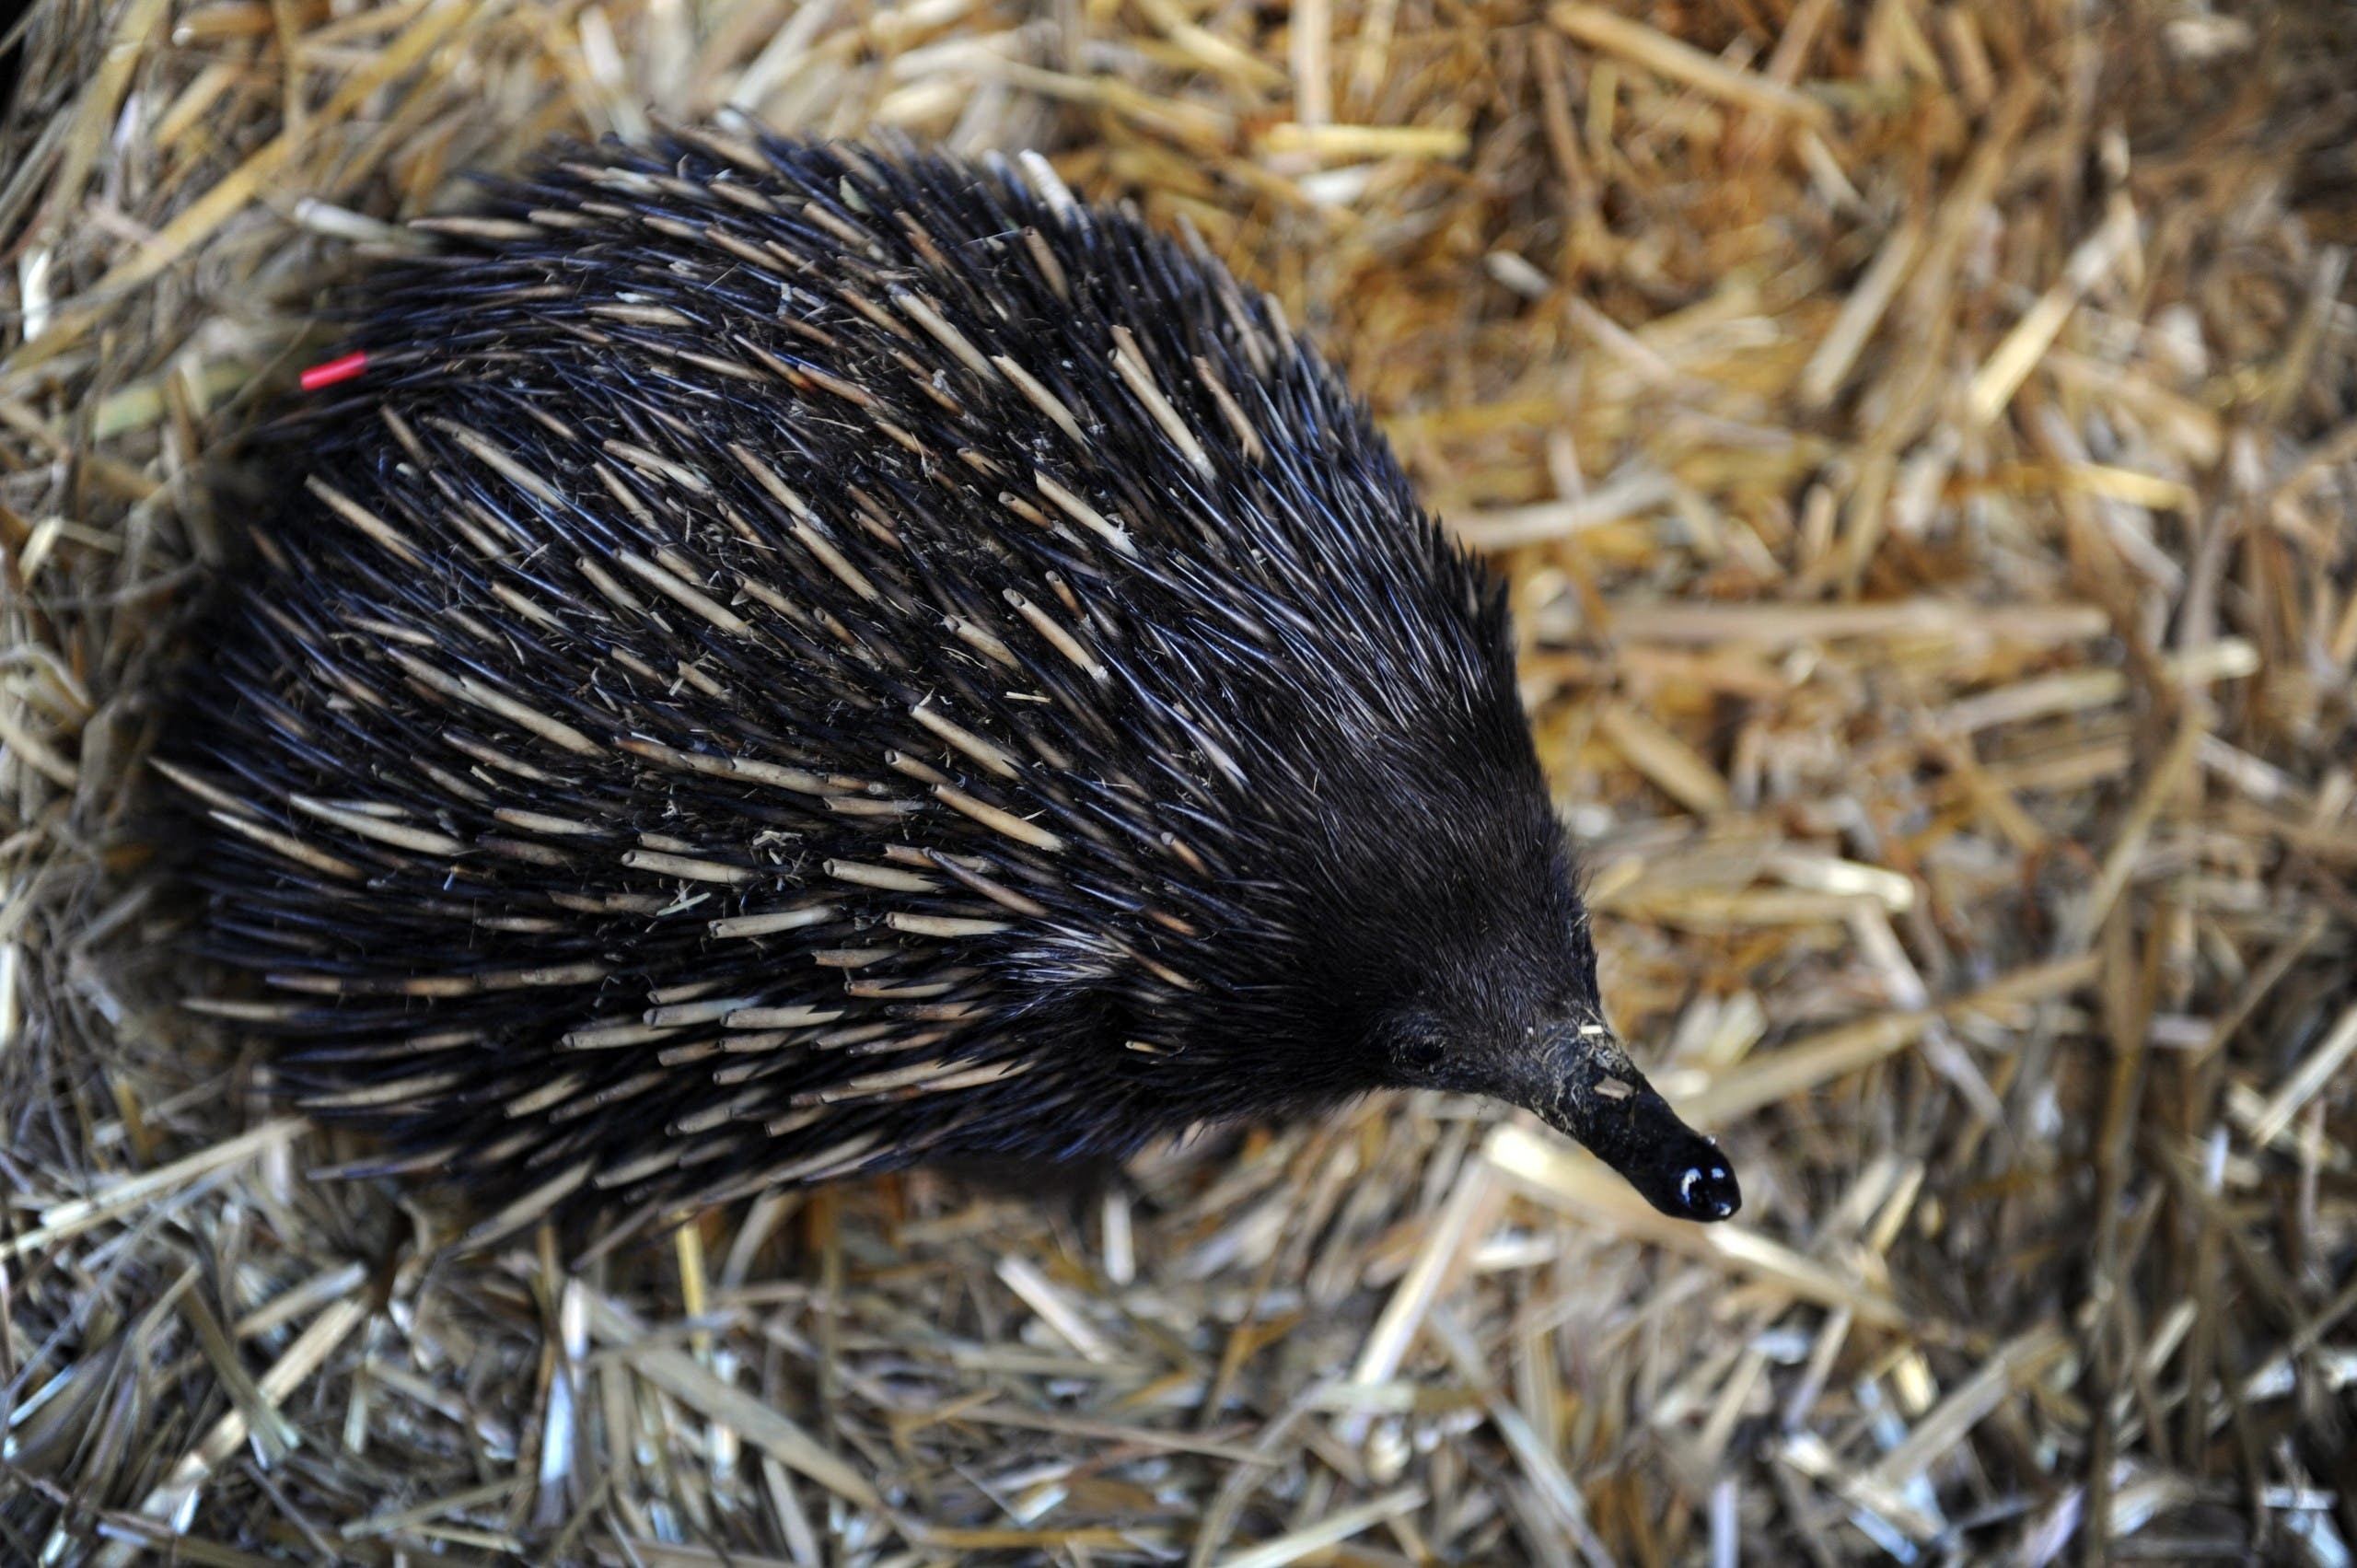 An echidna is displayed by wildlife personnel at Martin Place public square in Sydney's central district as Australia's zoo and aquarium association celebrate the National Threatened Species Day on September 7, 2012. (File photo: AFP)